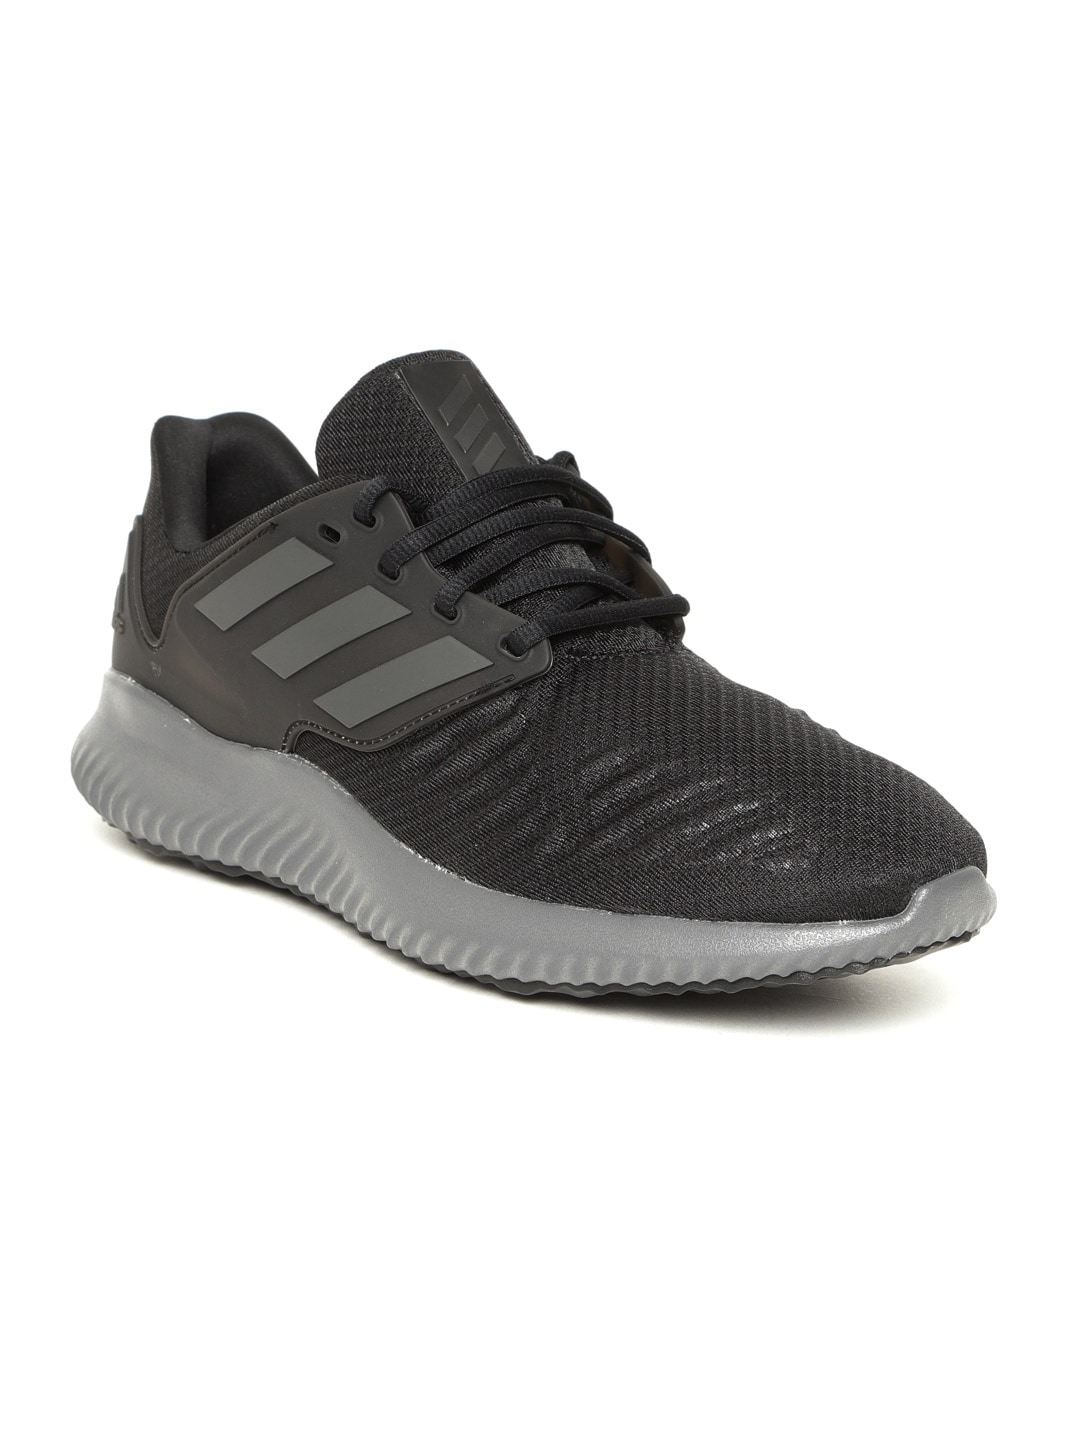 ff212859234c1 Alphabounce - Buy Alphabounce online in India